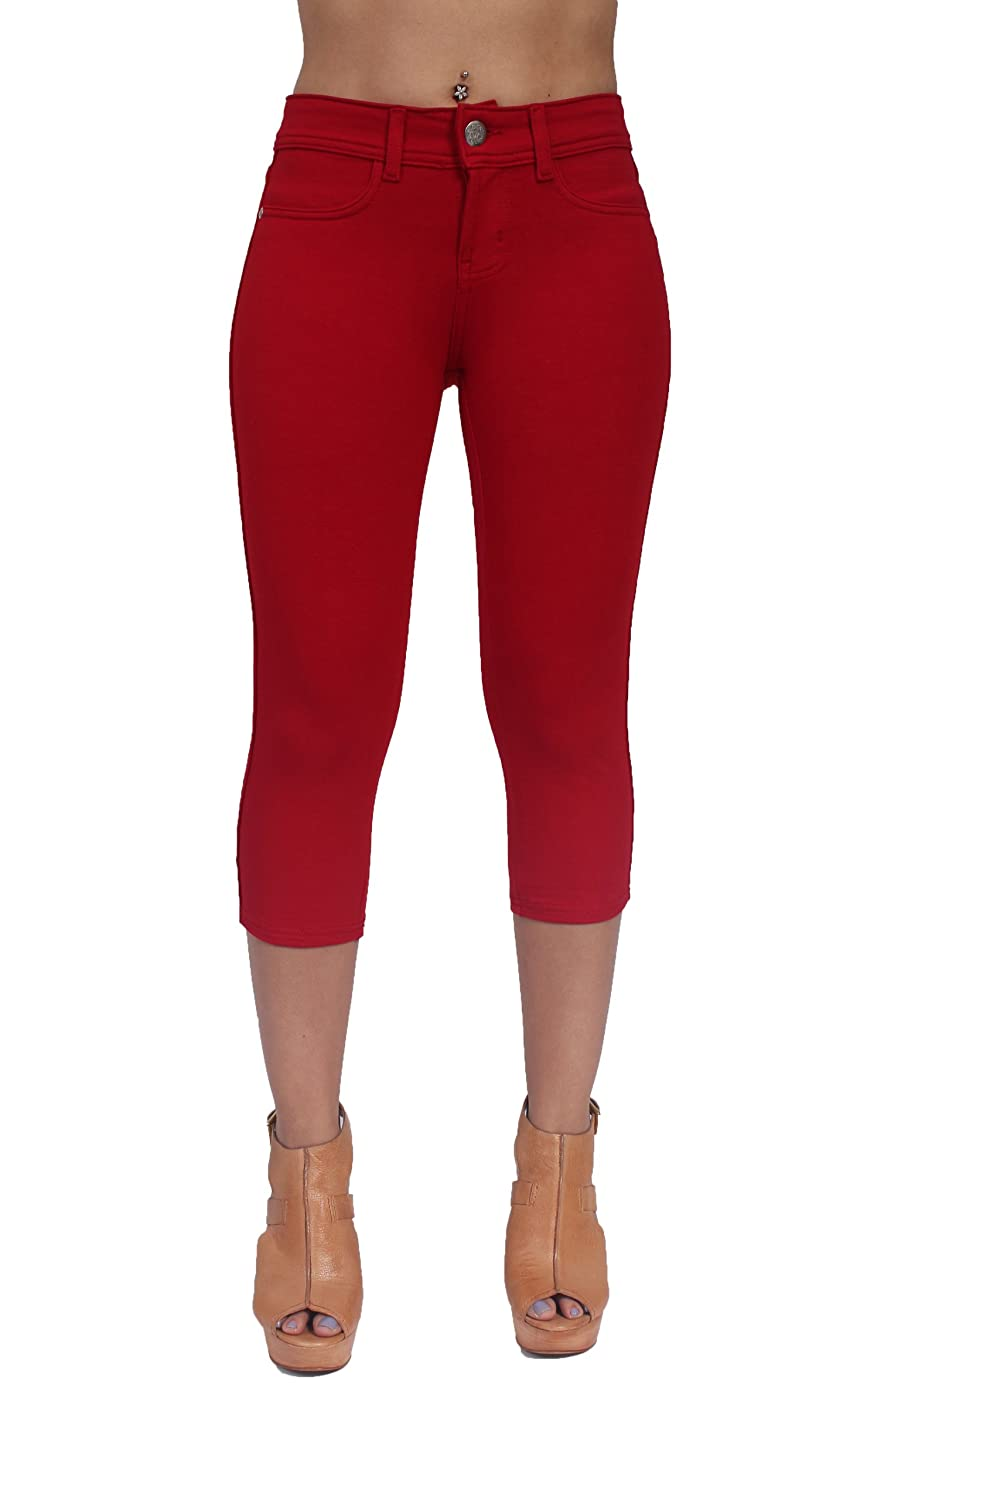 Basic Brazilian Cut Sexy French Terry Moleton Capri in Red Color JW -212RED